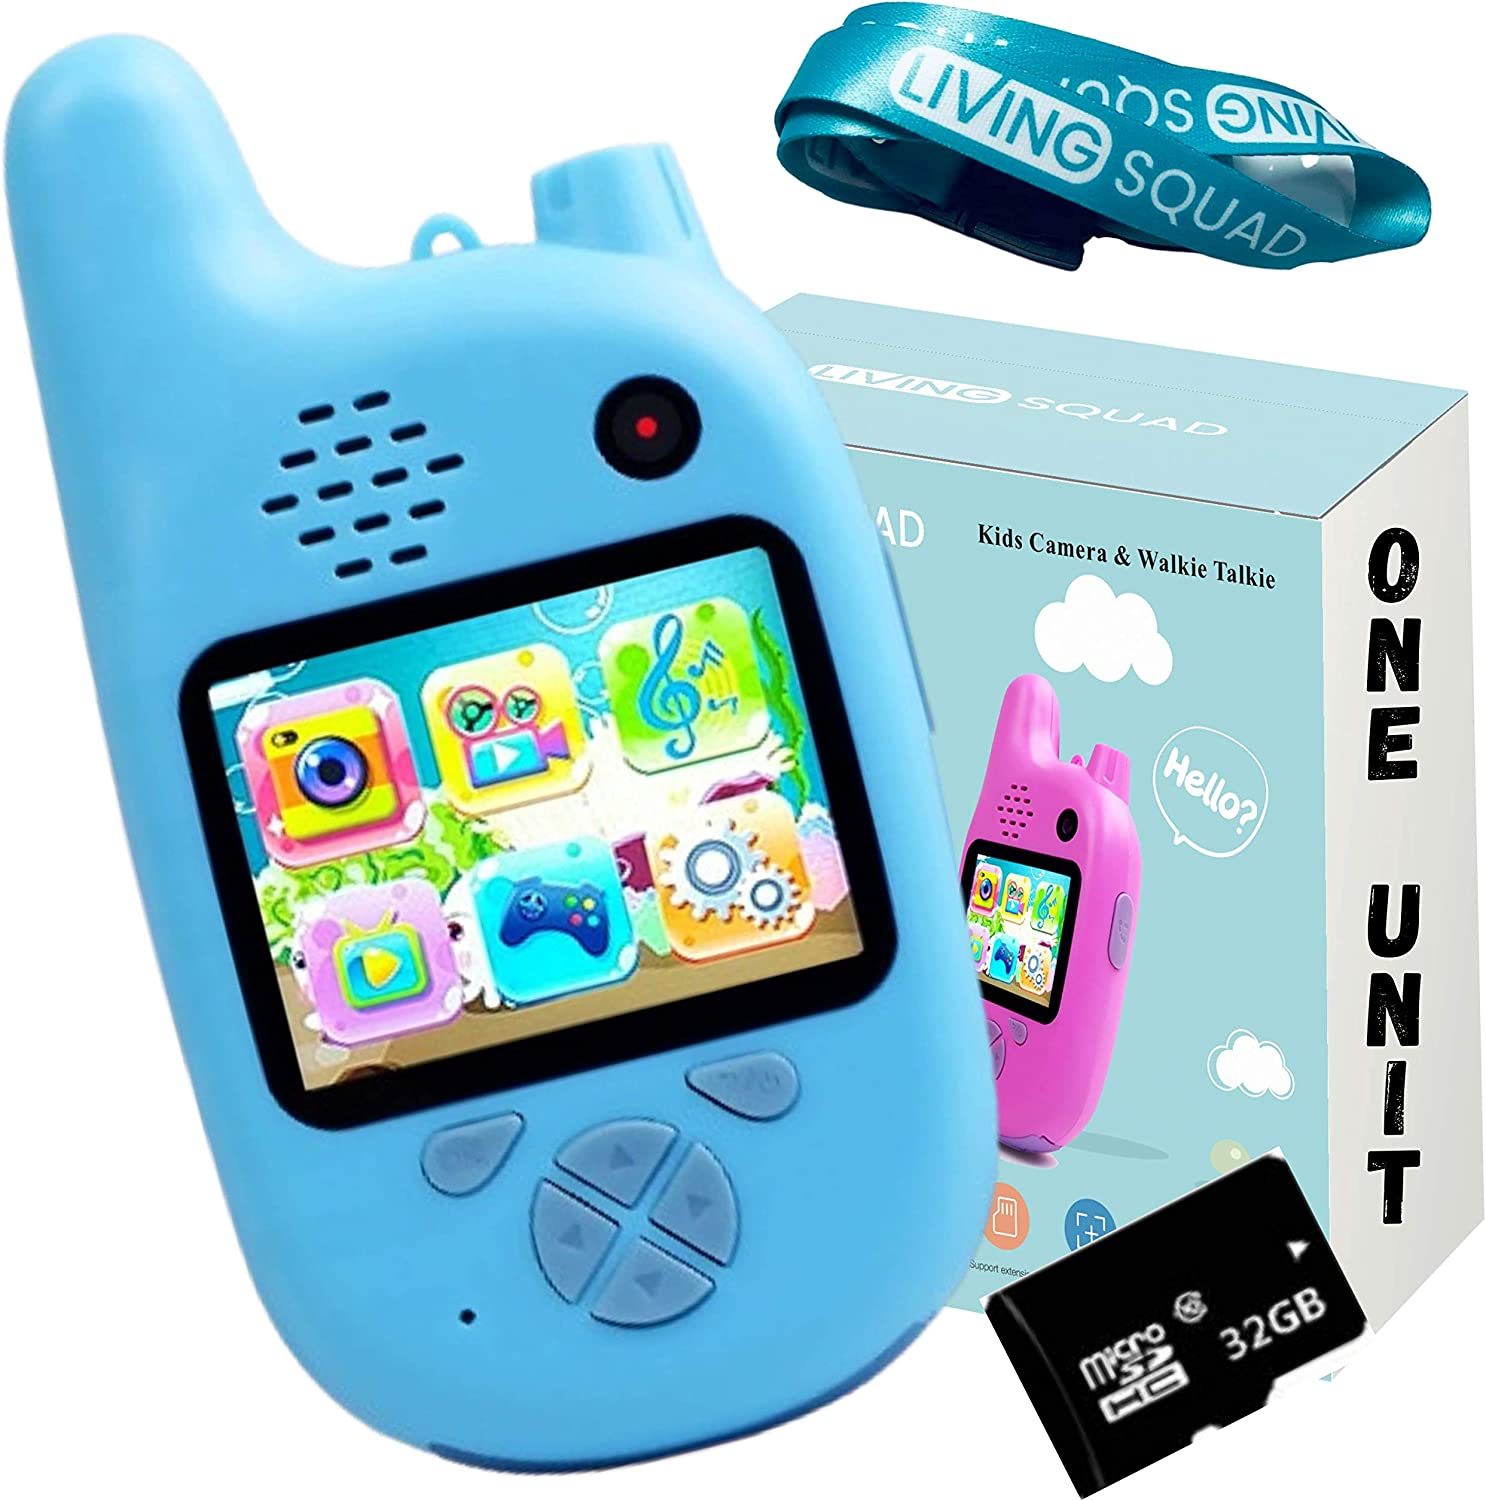 Kids Digital Camera with Walkie Blue Extra Function- Talkies Manufacturer OFFicial shop ONE Tucson Mall